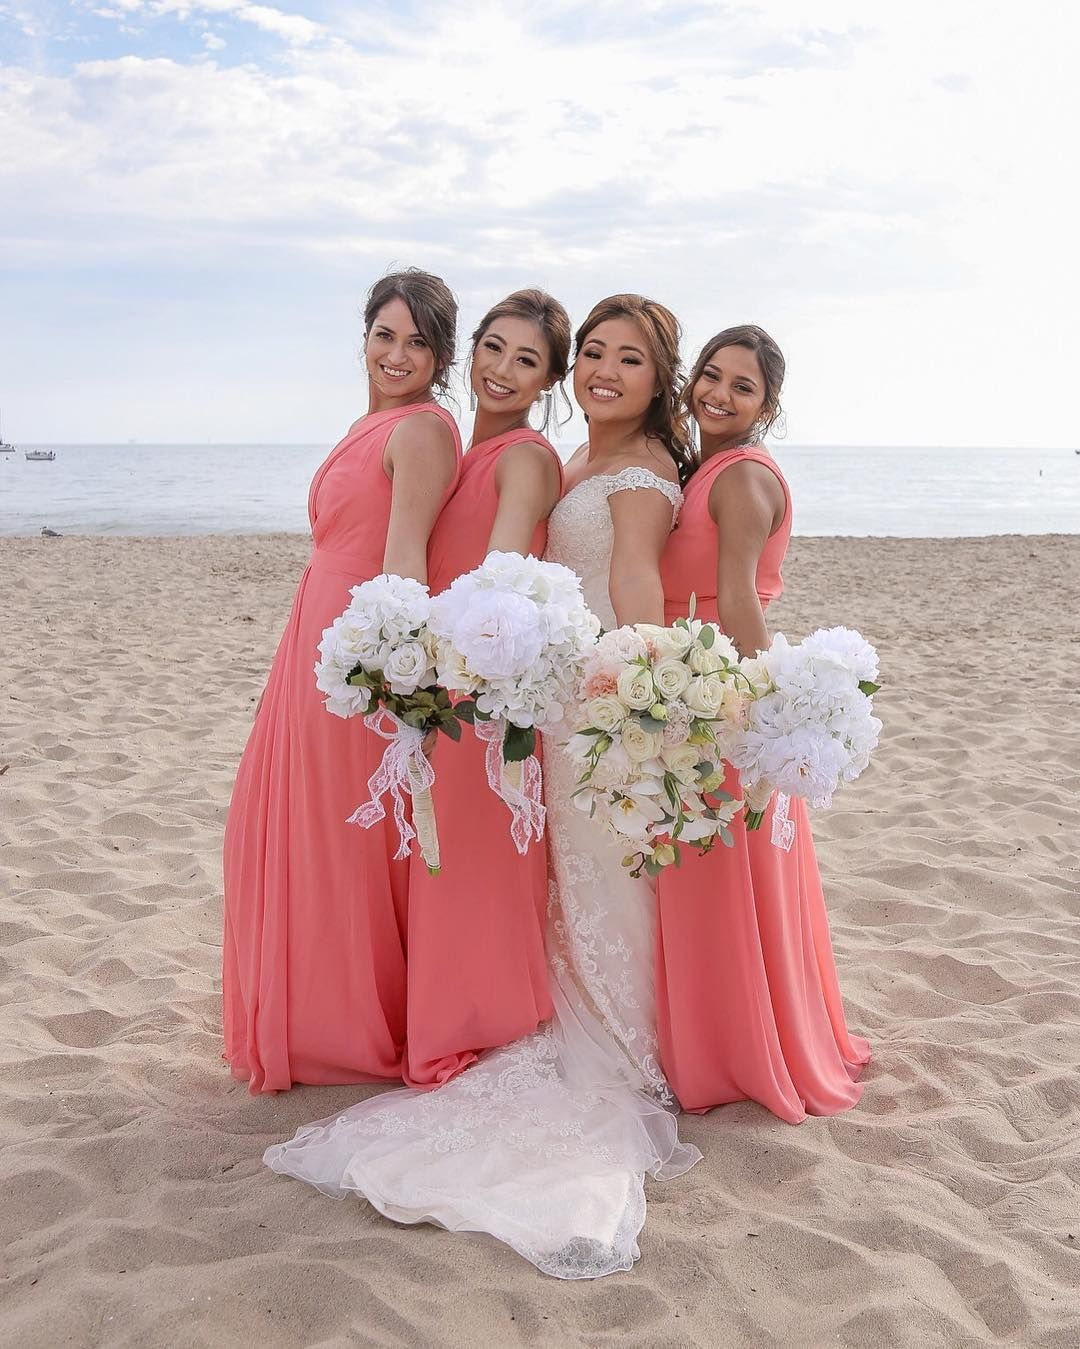 Summer wedding coral bridesmaids dresses davids bridal parfait for the beach bridal party coral one shoulder long davids bridal bridesmaid dresses are the ombrellifo Choice Image